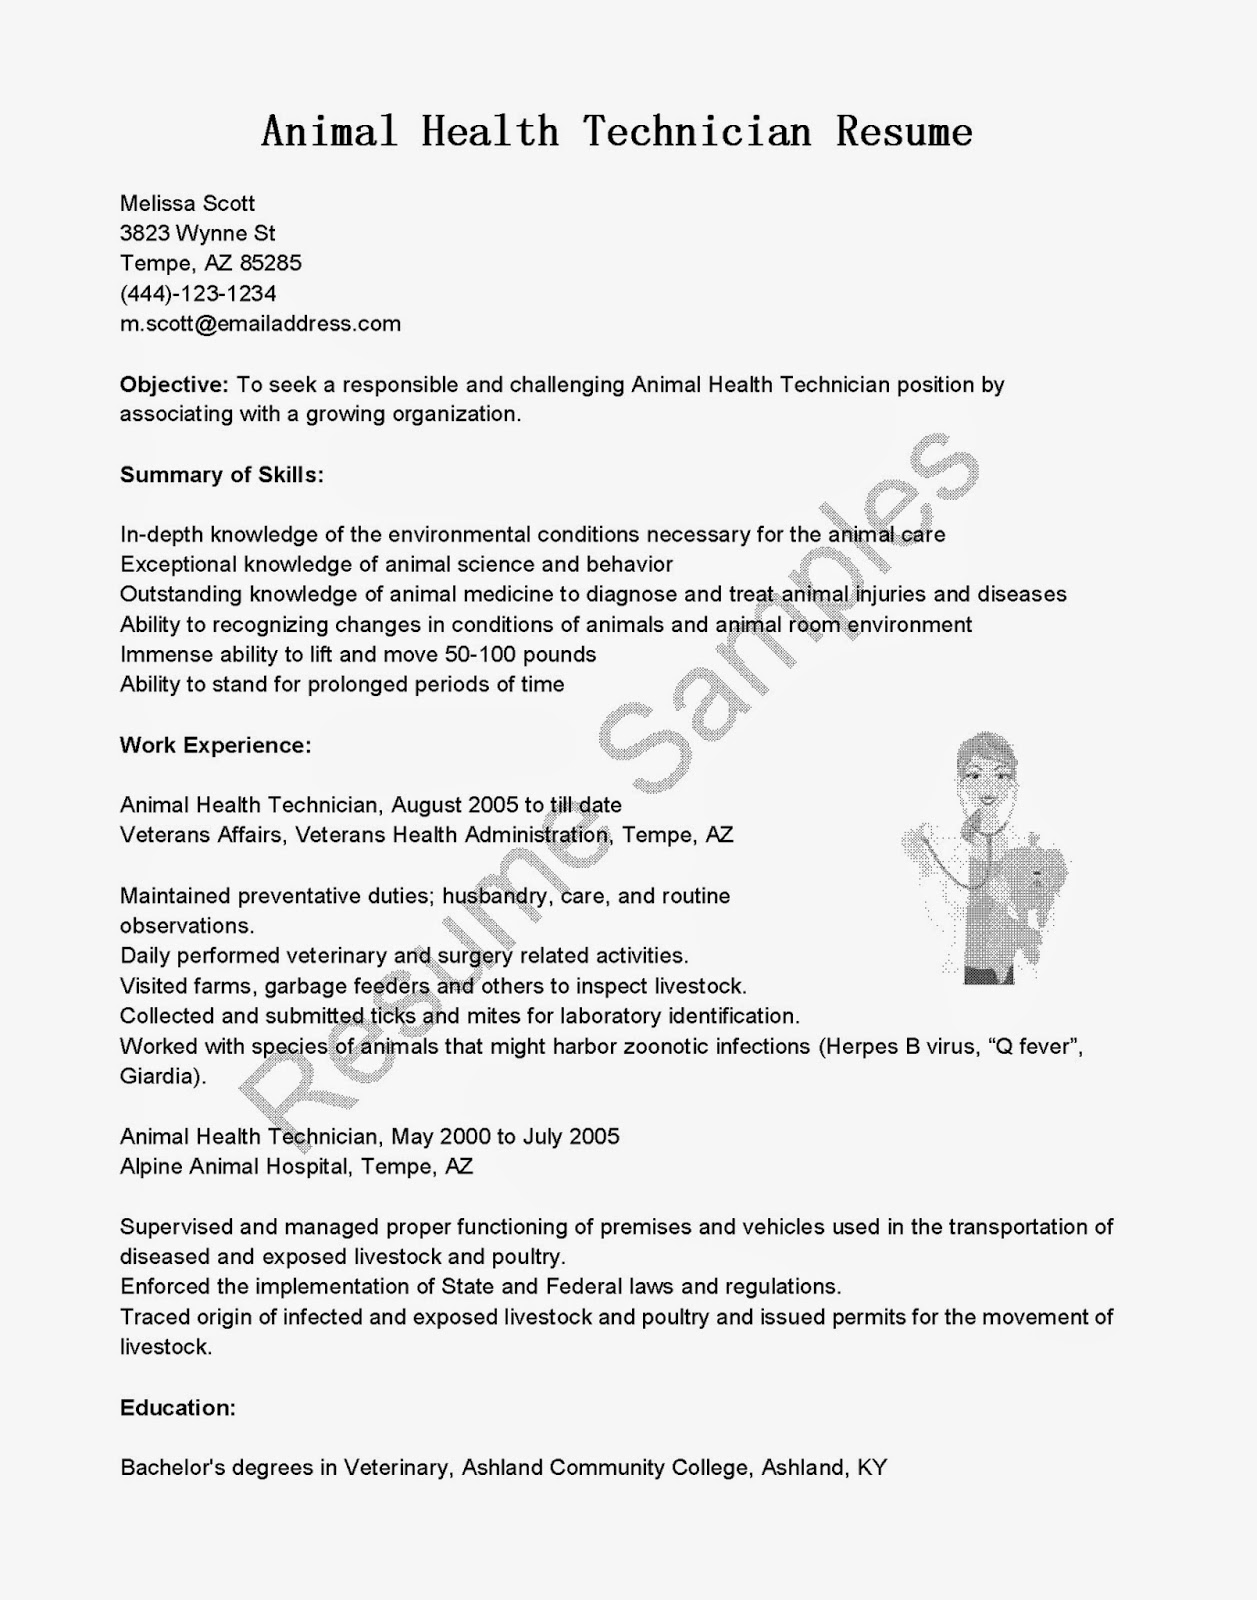 Behavioral Health Technician Cover Letter Resume Examples For Veterinary Technicians Cover Letter Uk